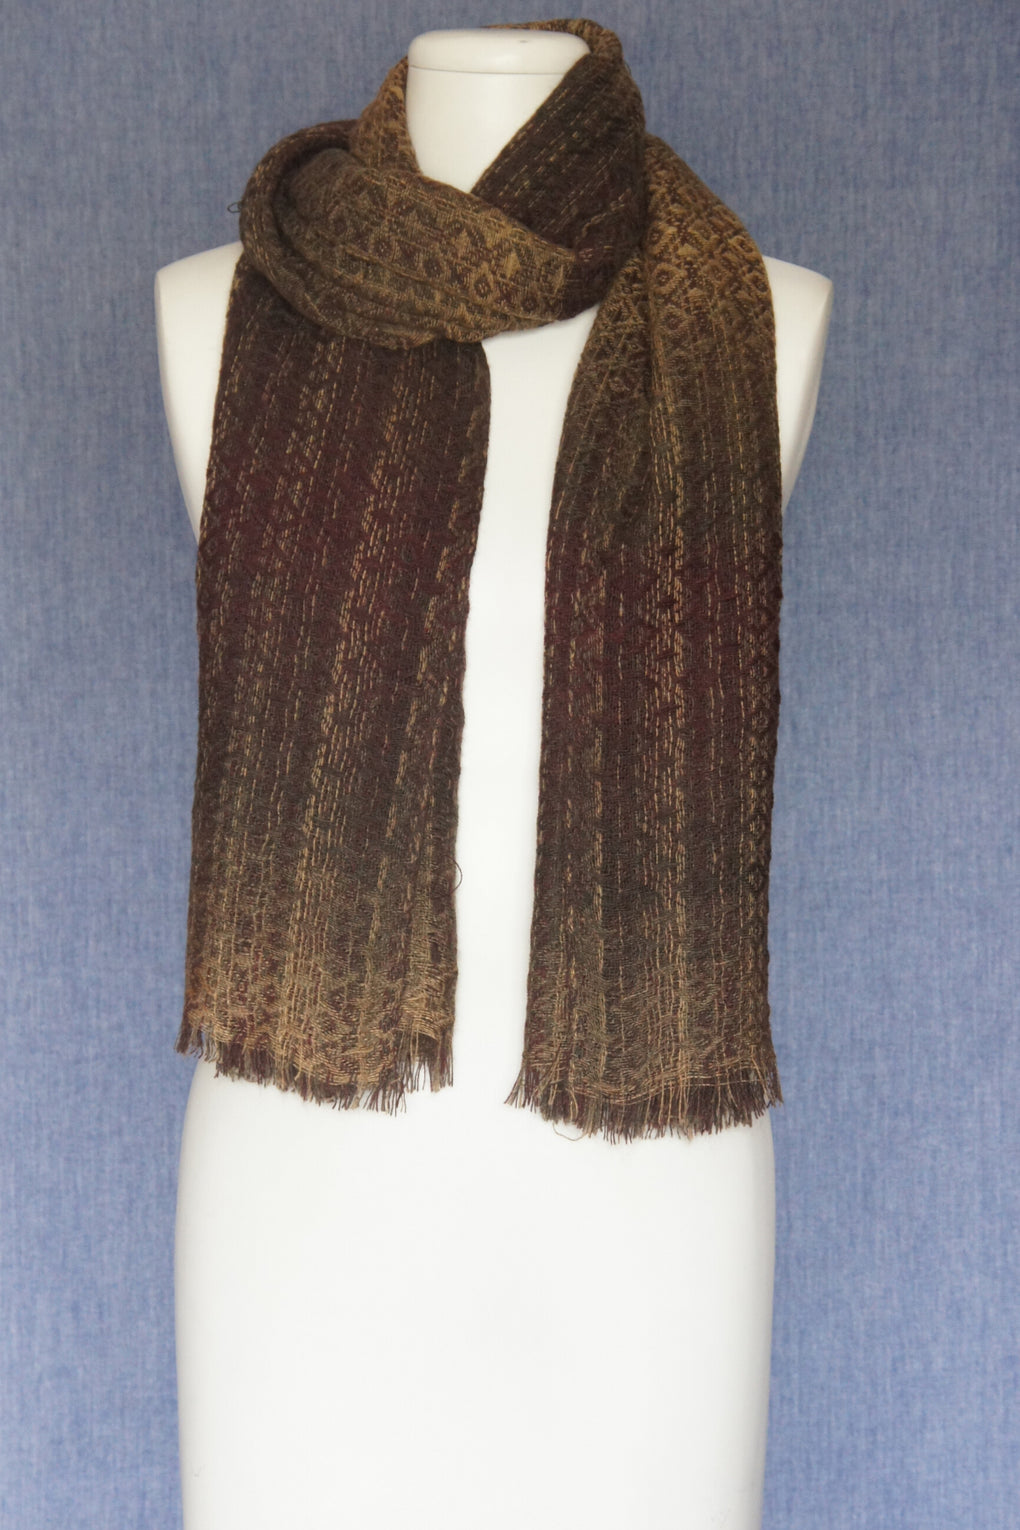 Honeycomb Weave Scarf (SE-1641)